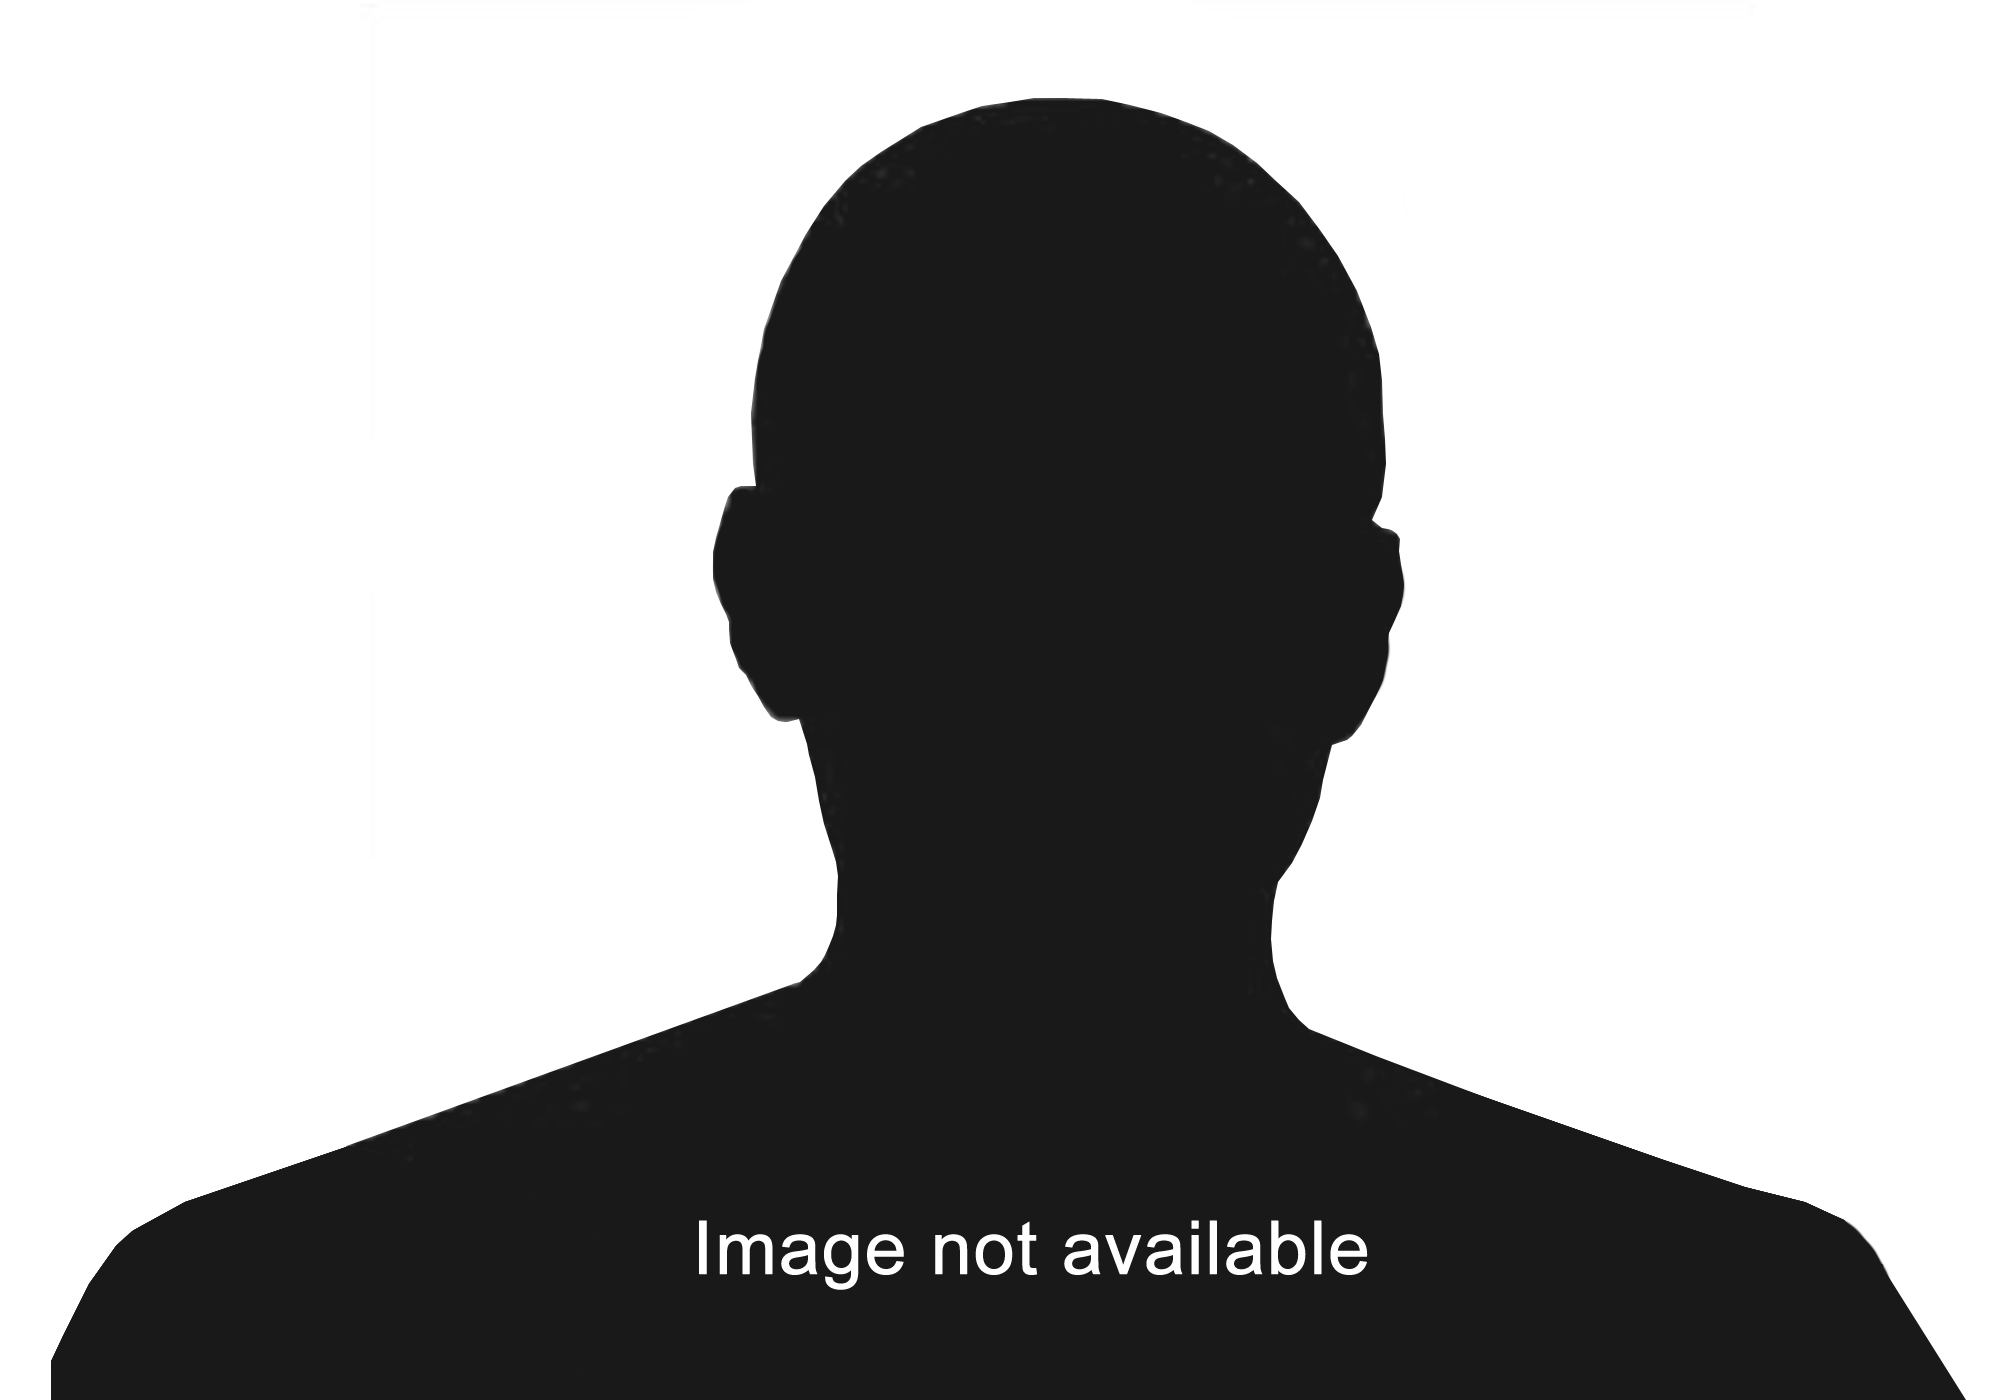 A black silhouette of a man's head and shoulders. Text reads 'Image not available'.